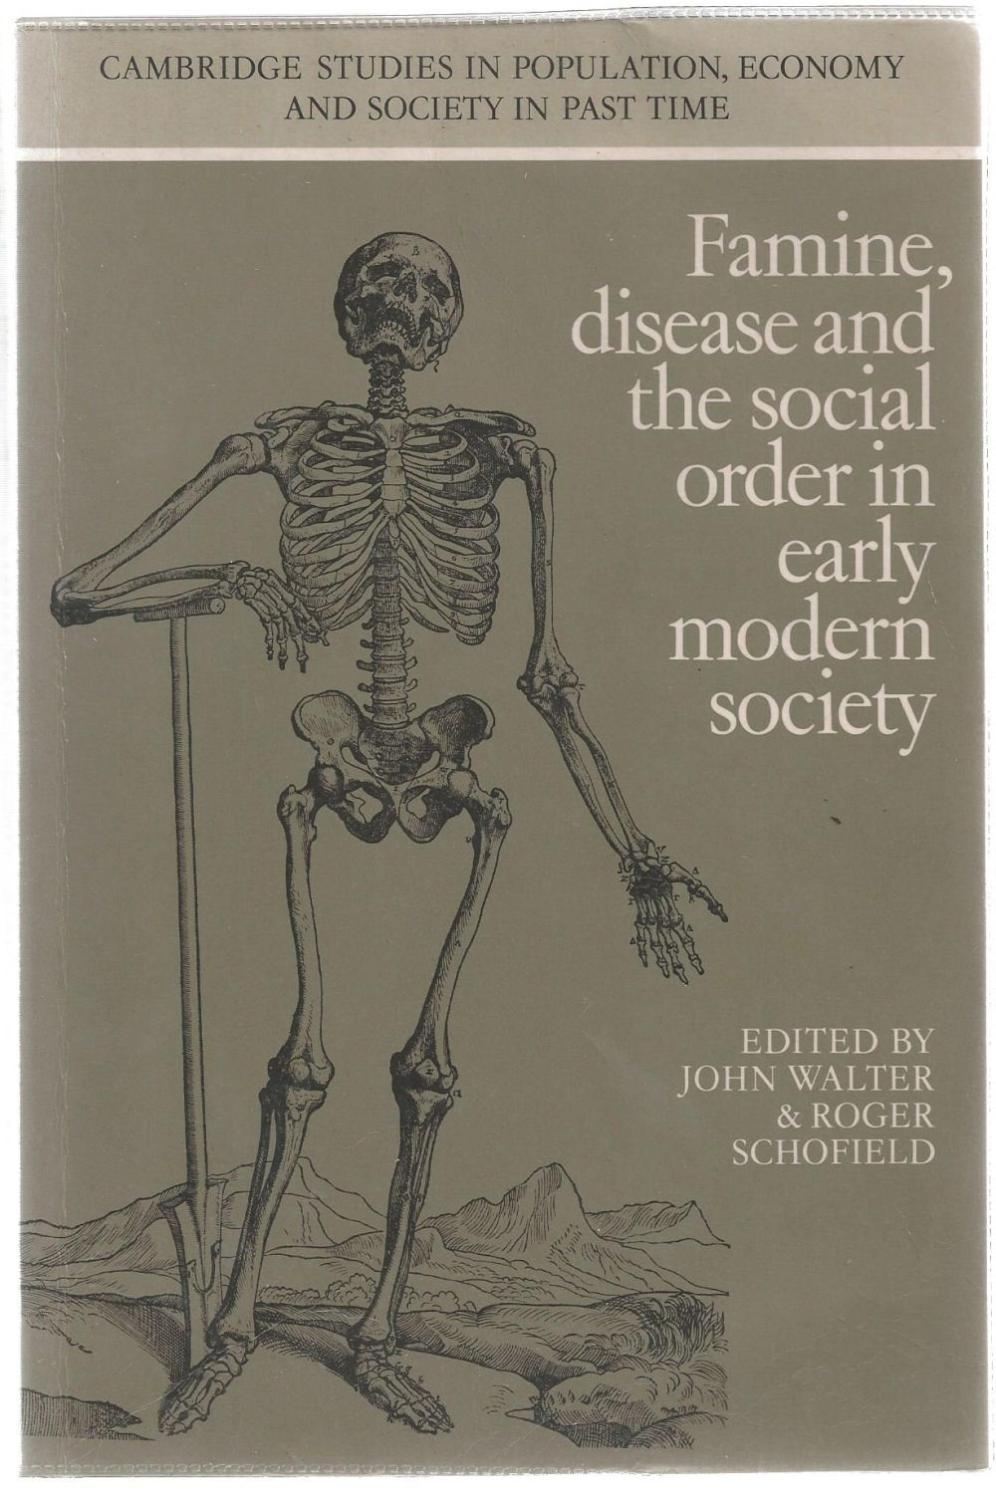 Famine Disease And The Social Order In Early Modern Society By